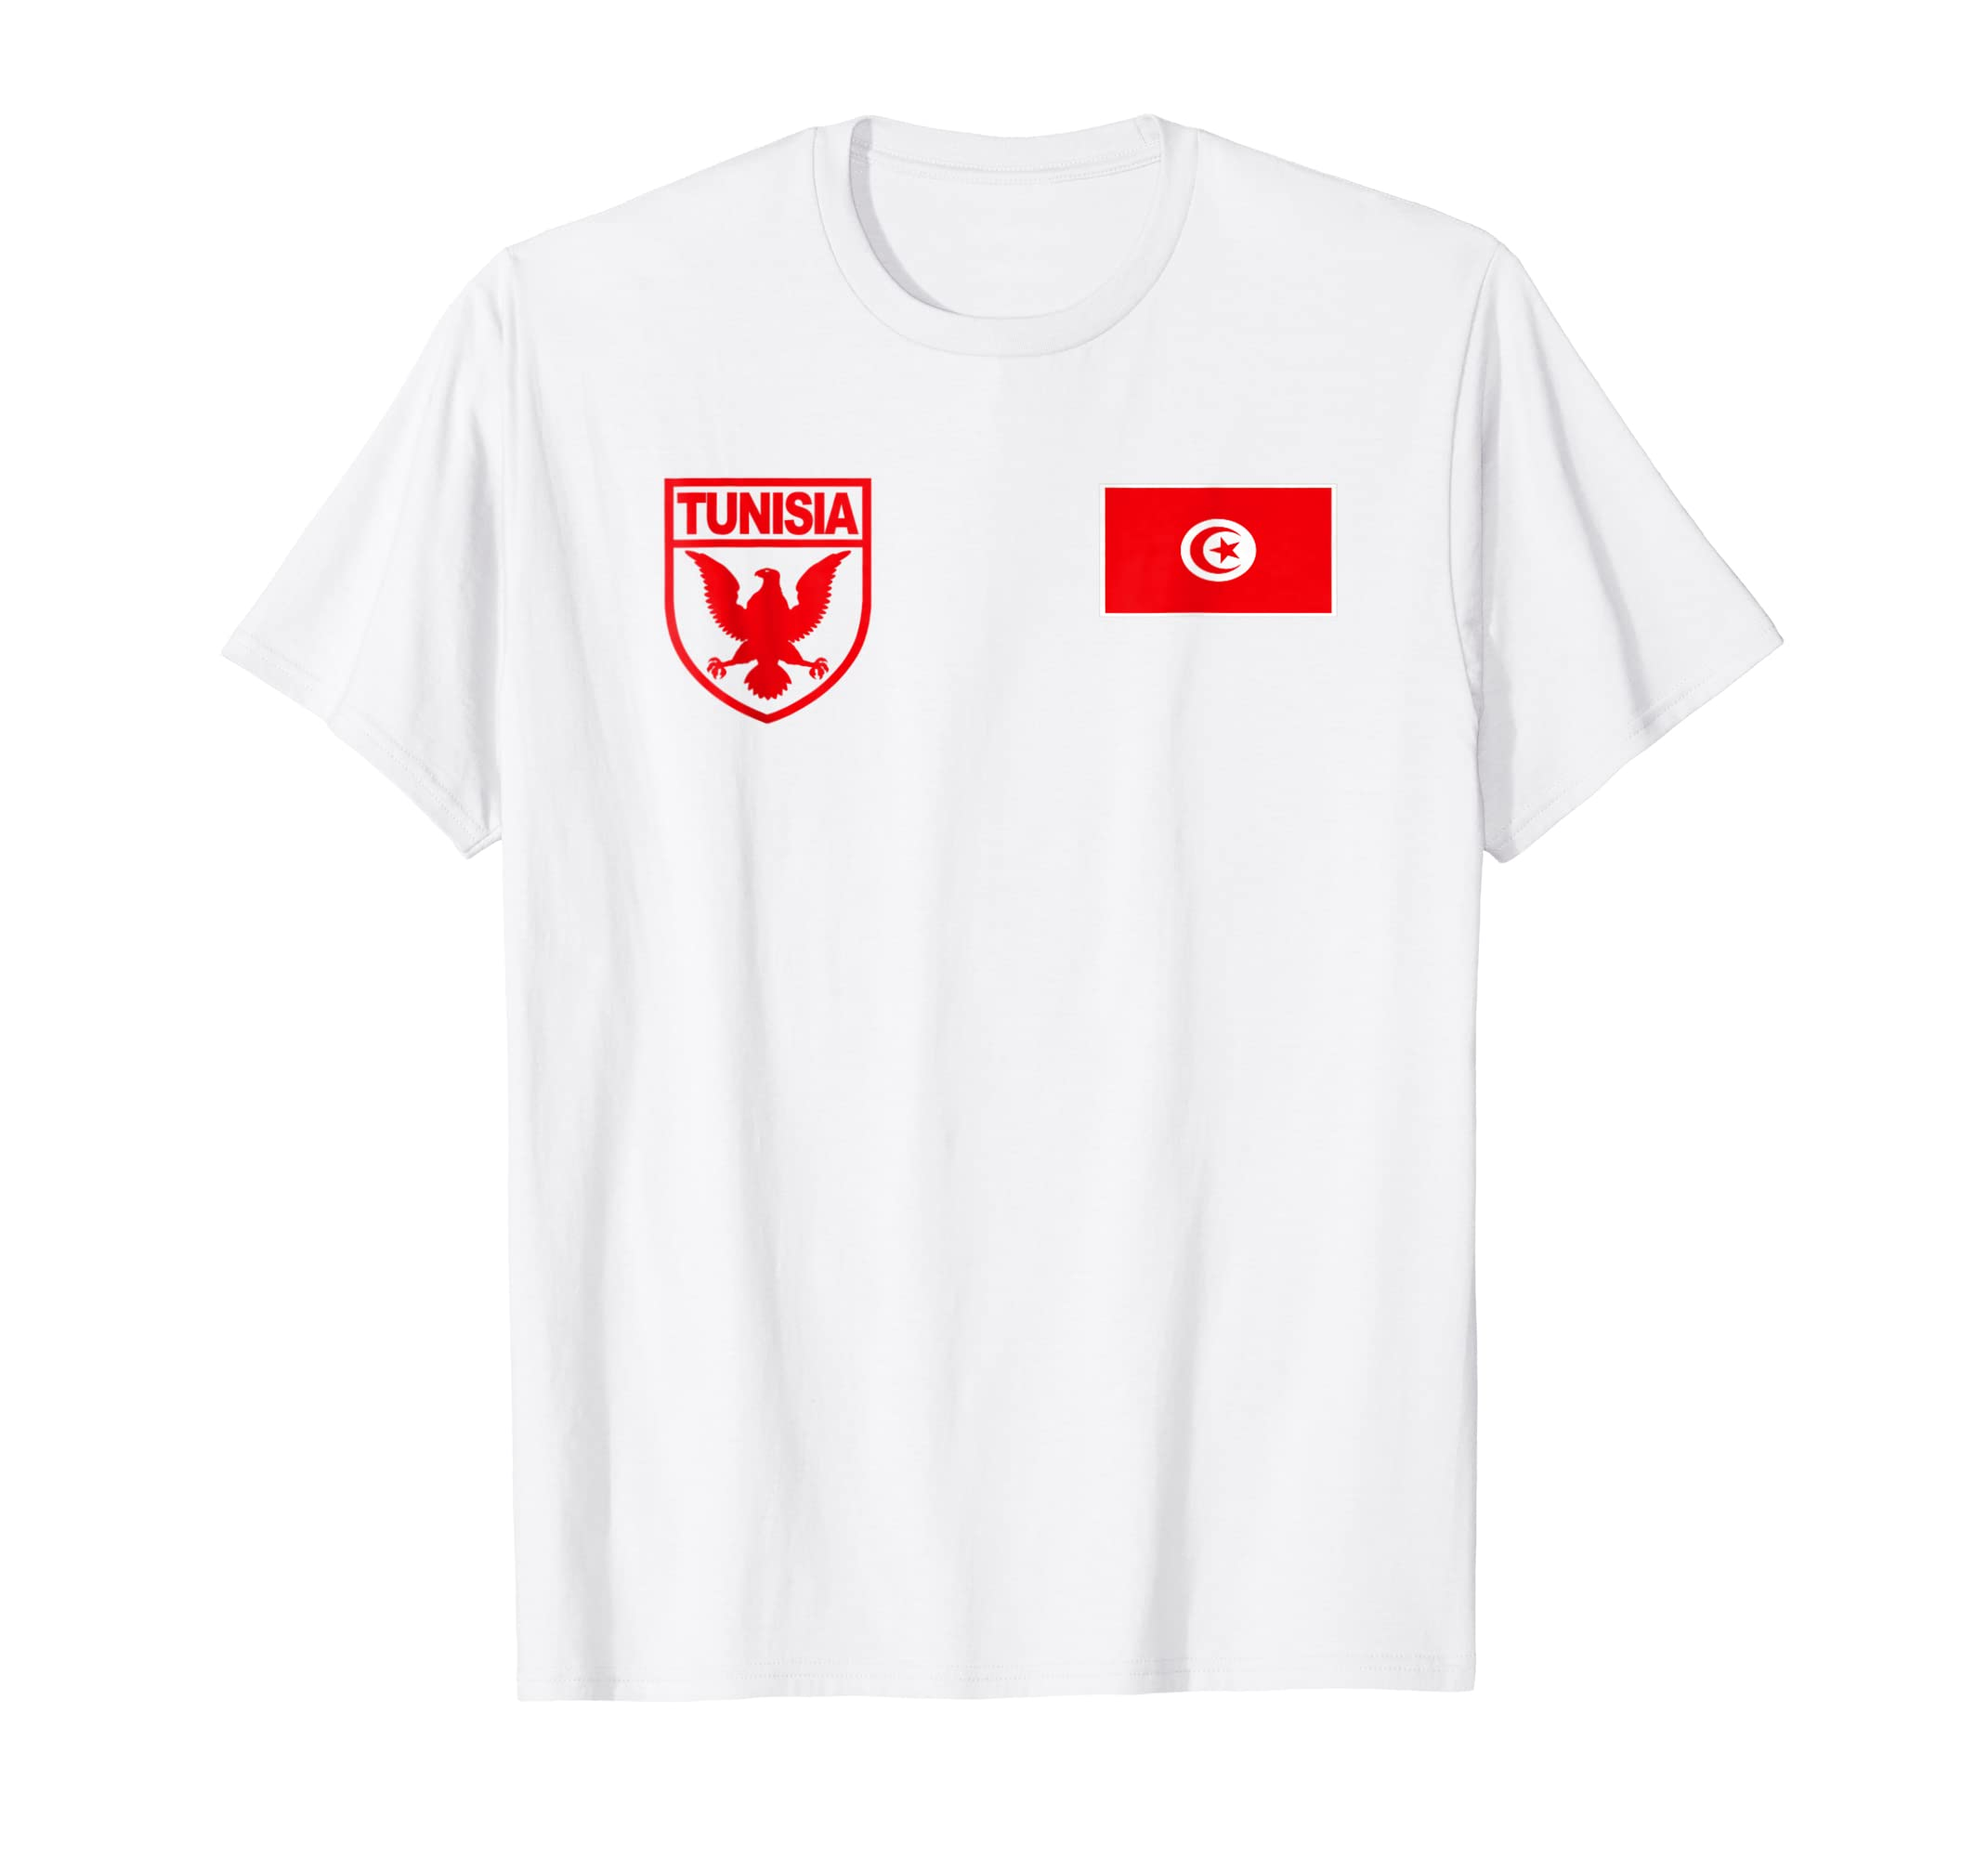 info for 594ec 0f9a6 Amazon.com: Tunisia Futbol Soccer Jersey Tshirt: Clothing